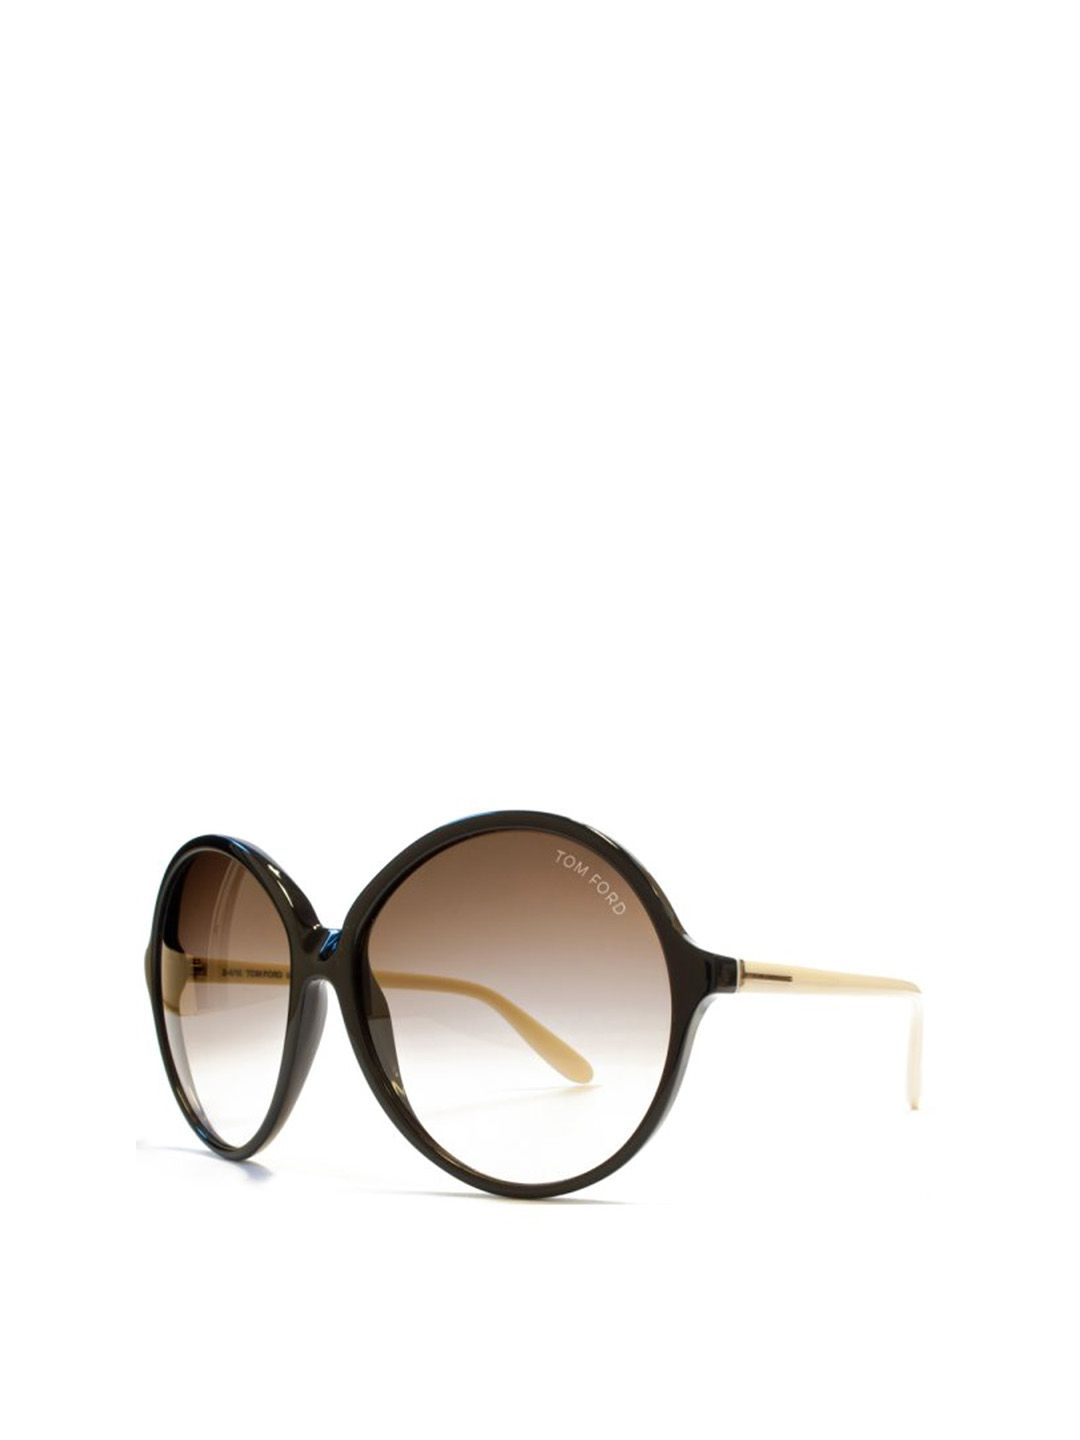 bf980bae9f Dark Brown Round Sunglasses - On Sale - Mistile